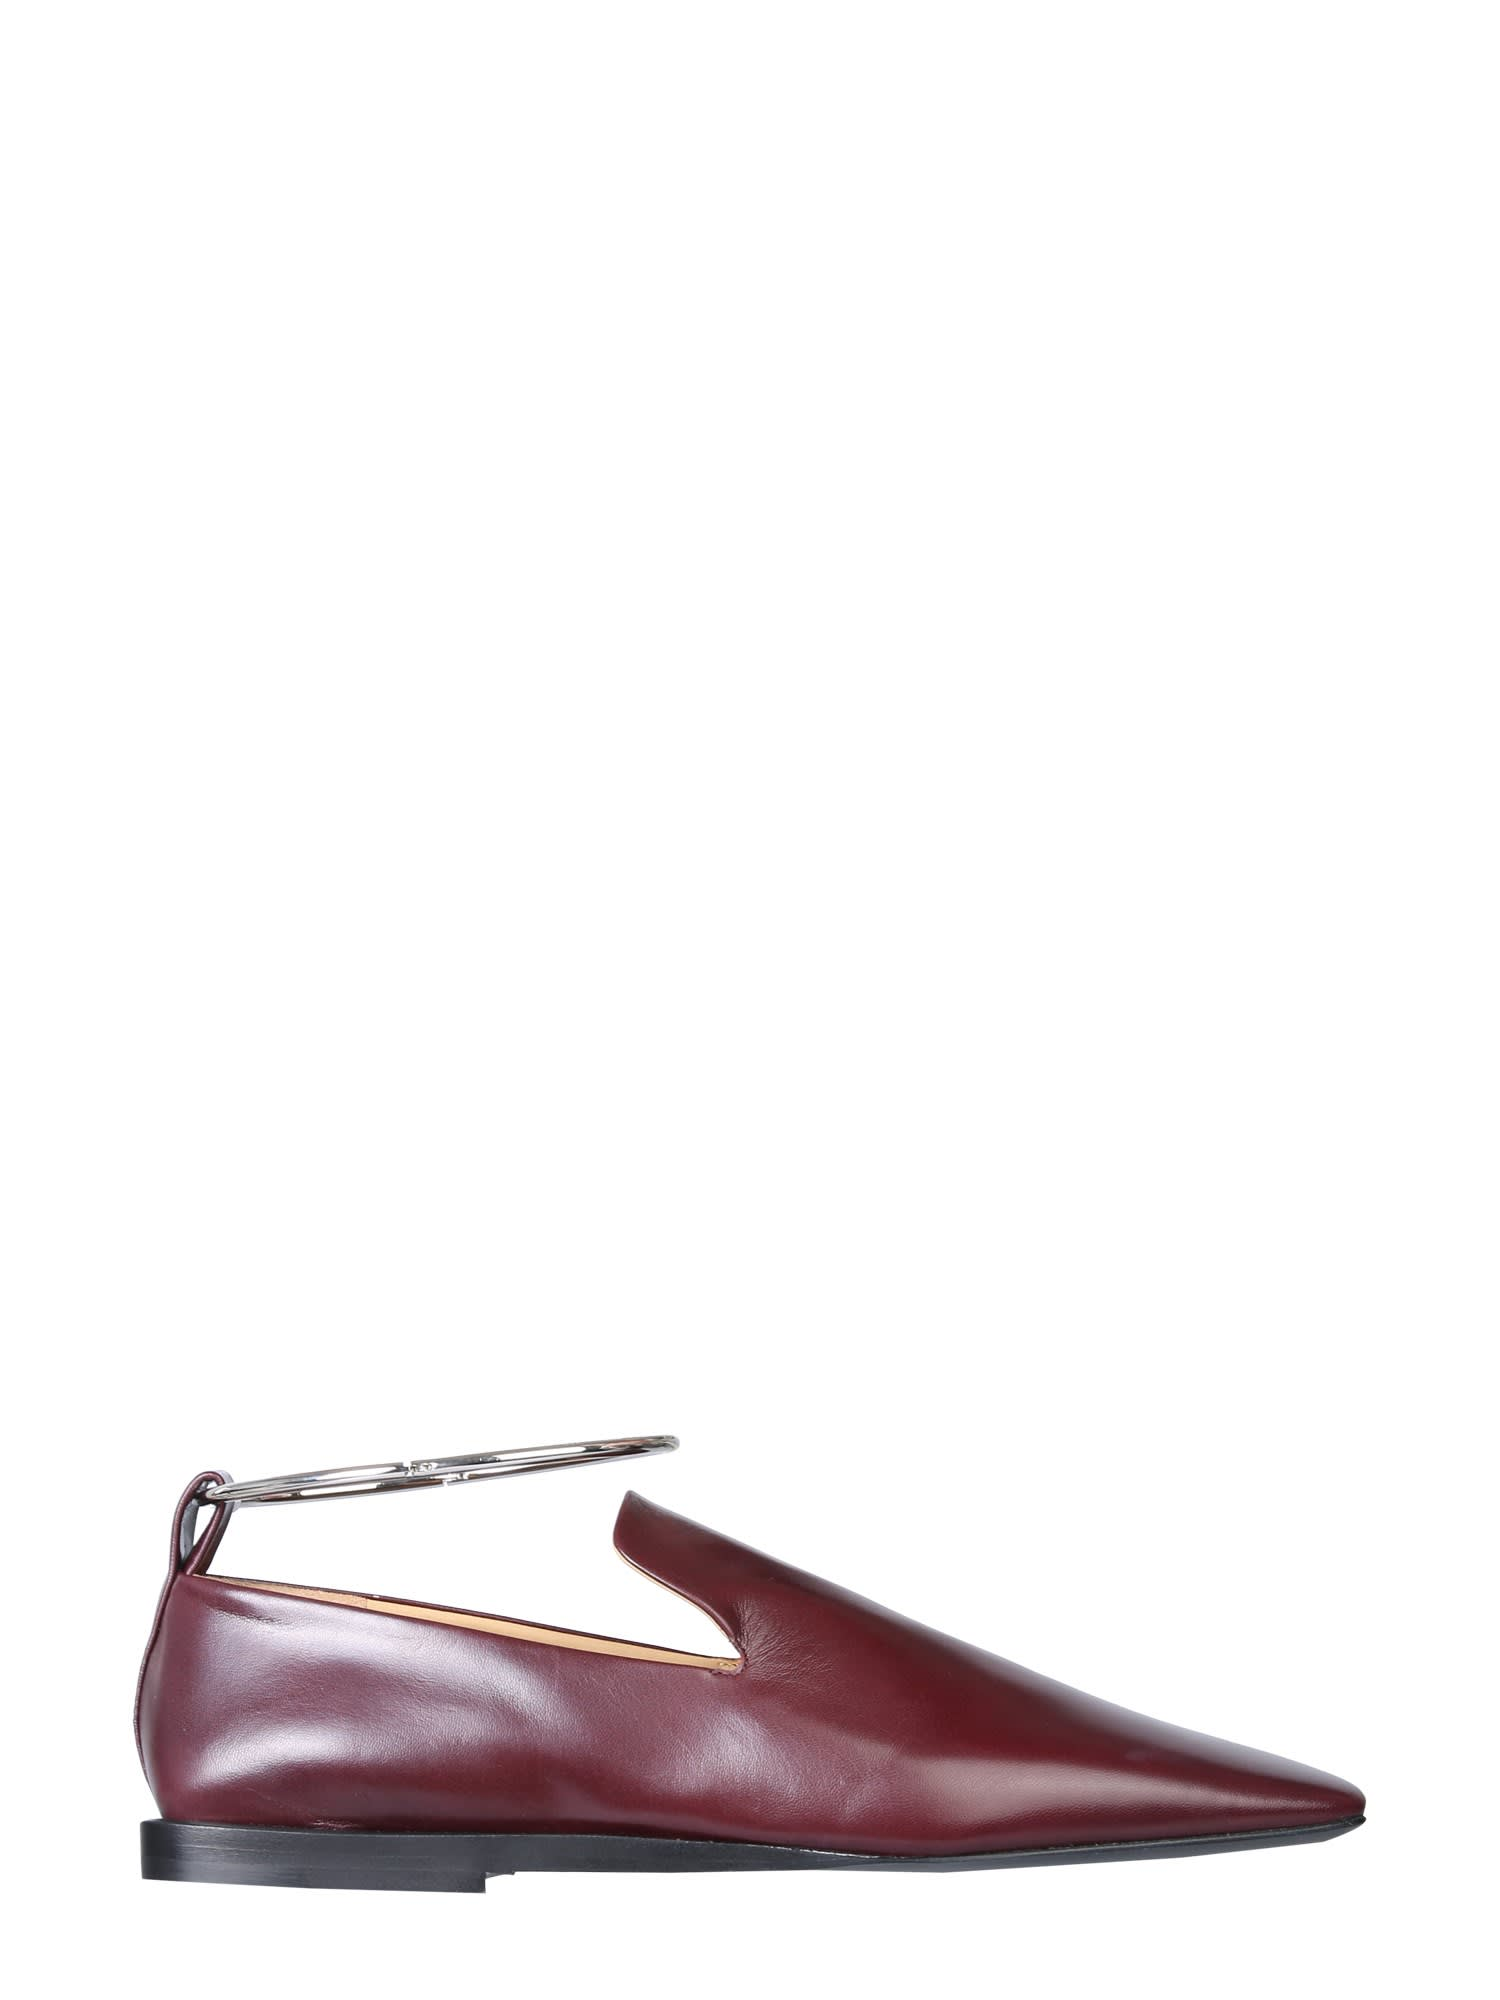 Jil Sander MOCCASIN WITH RING